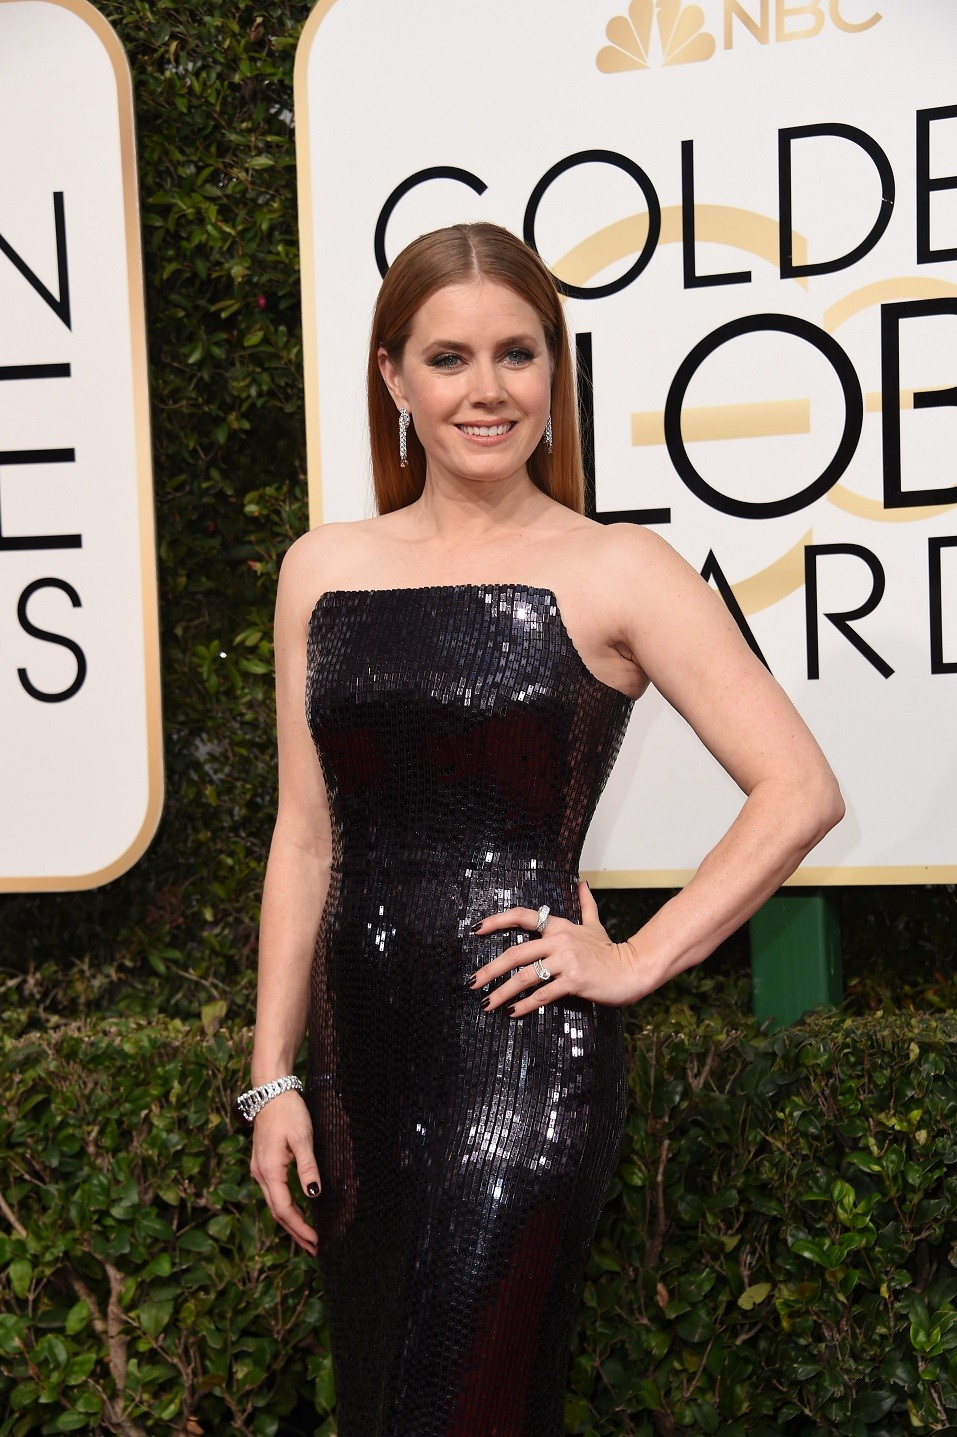 Actress Amy Adams arrives at the 74th annual Golden Globe Awards